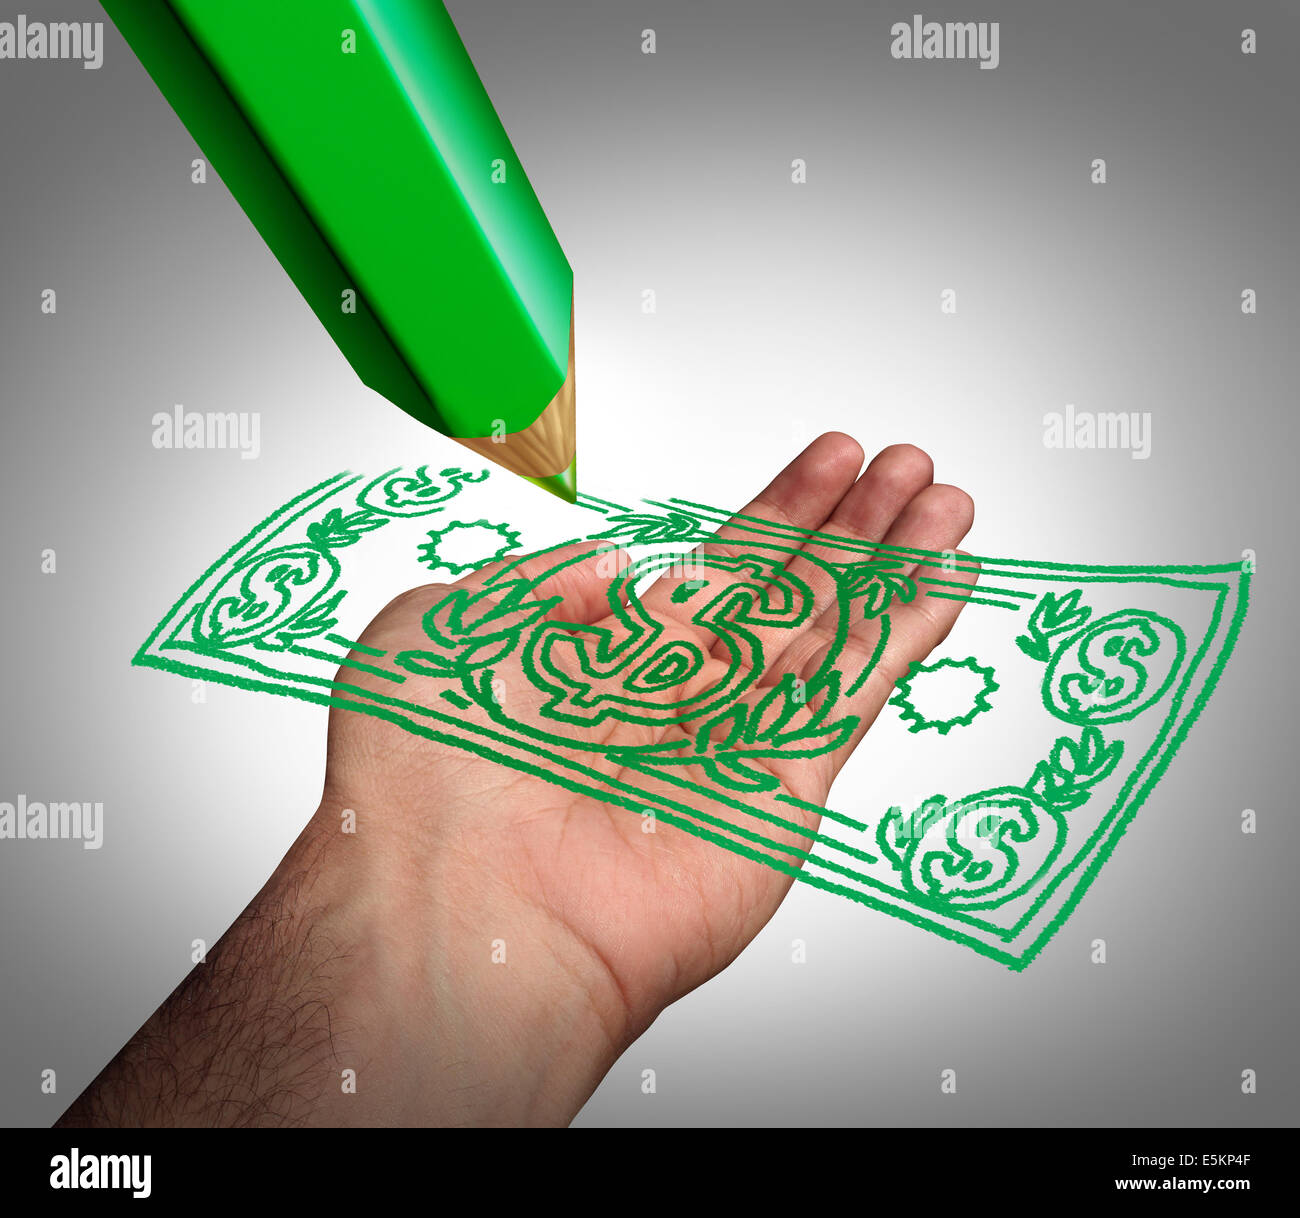 Making money business concept as a green pencil drawing a dollar currency on an open hand as a symbol of creating - Stock Image